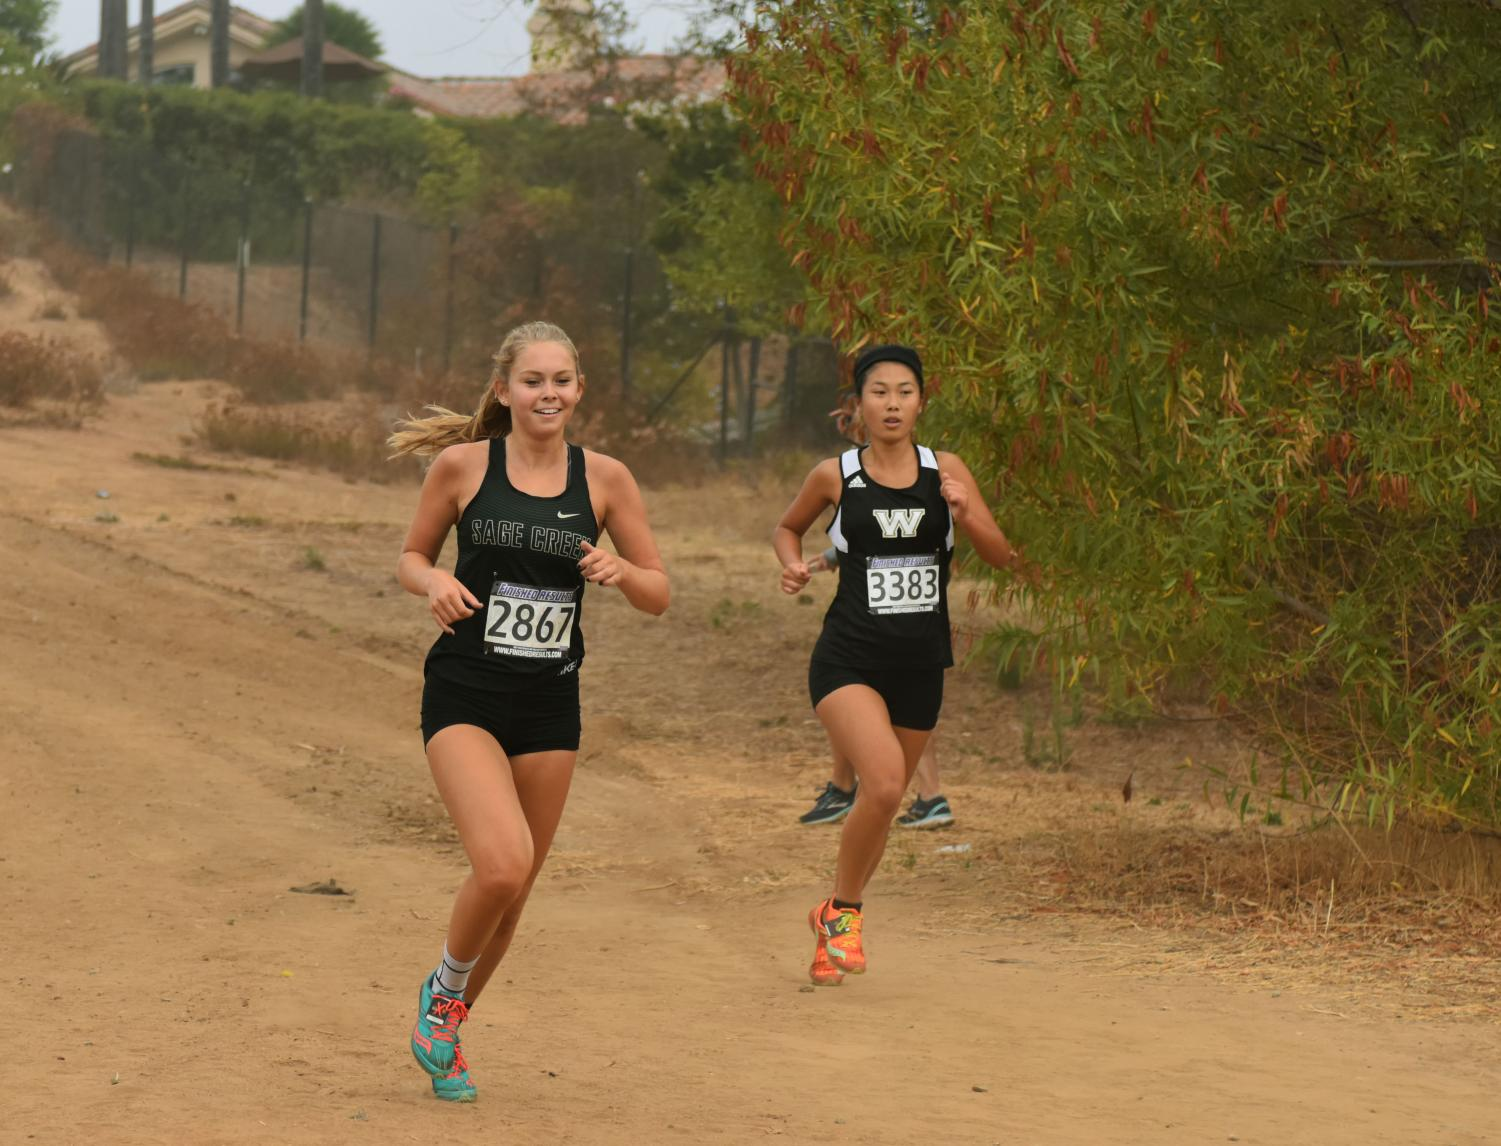 Junior%2C+Addie+Ebbs%2C+competes+in+the+girls+varsity+division+1+cross+country+race+this+past+Saturday+at+the+Bronco+Round-Up+meet.+This+being+the+very+first+cross+country+meet+of+the+season+at+Kit+Carson+Park%2C+the+girls+varsity+team+took+1st+place.